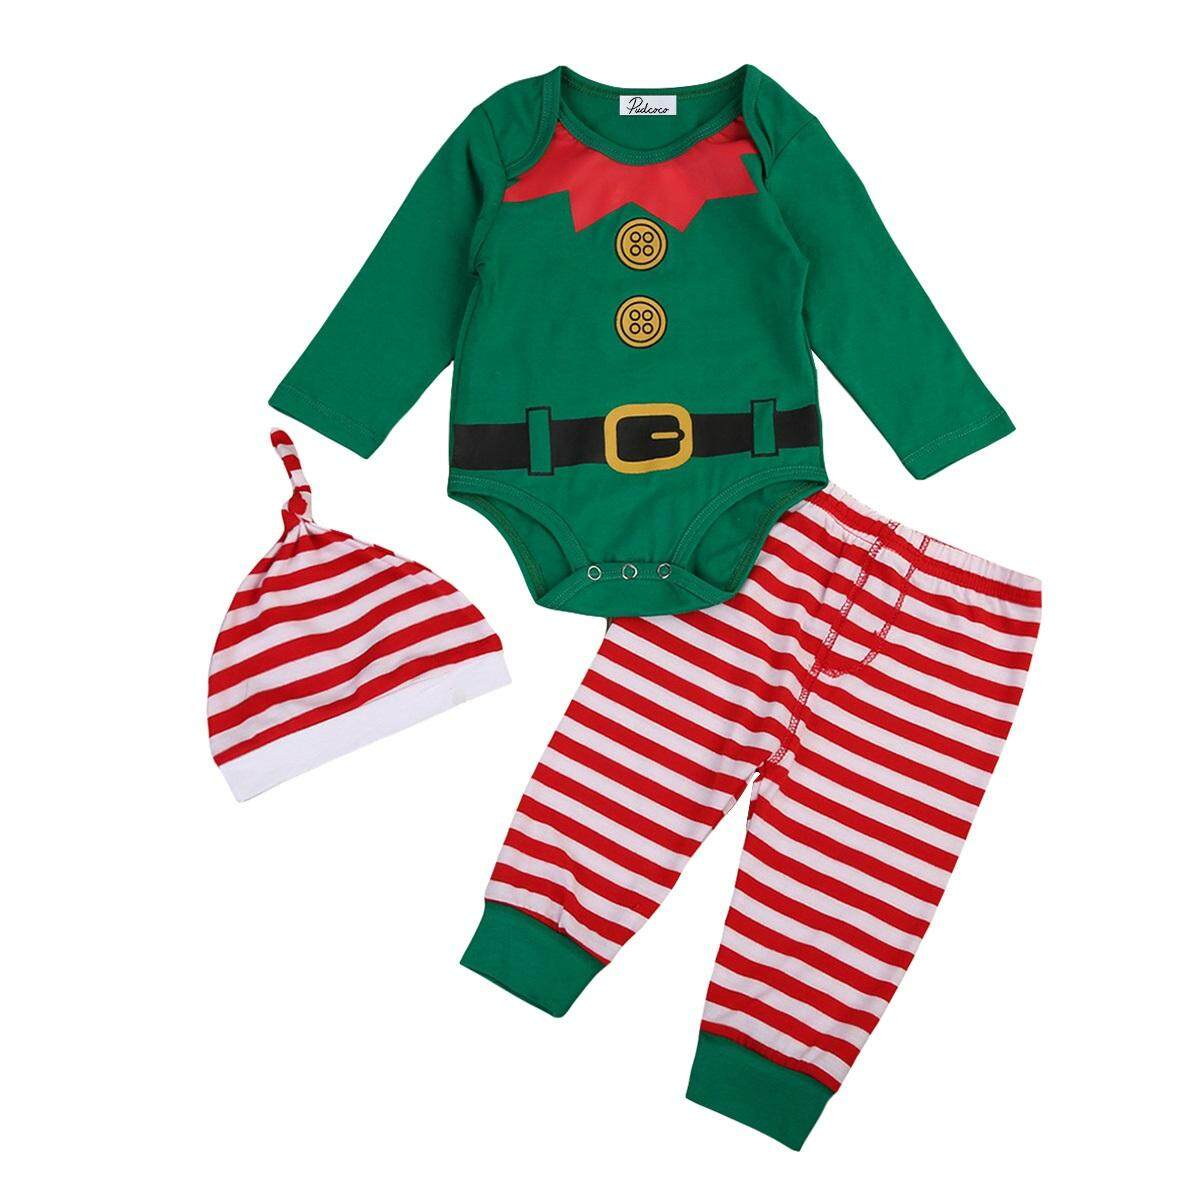 8cec6de0102 0-24 months Newborn Baby Girls Boys Christmas Costume Kids Infant Xmas  Clothing Sets Outfits